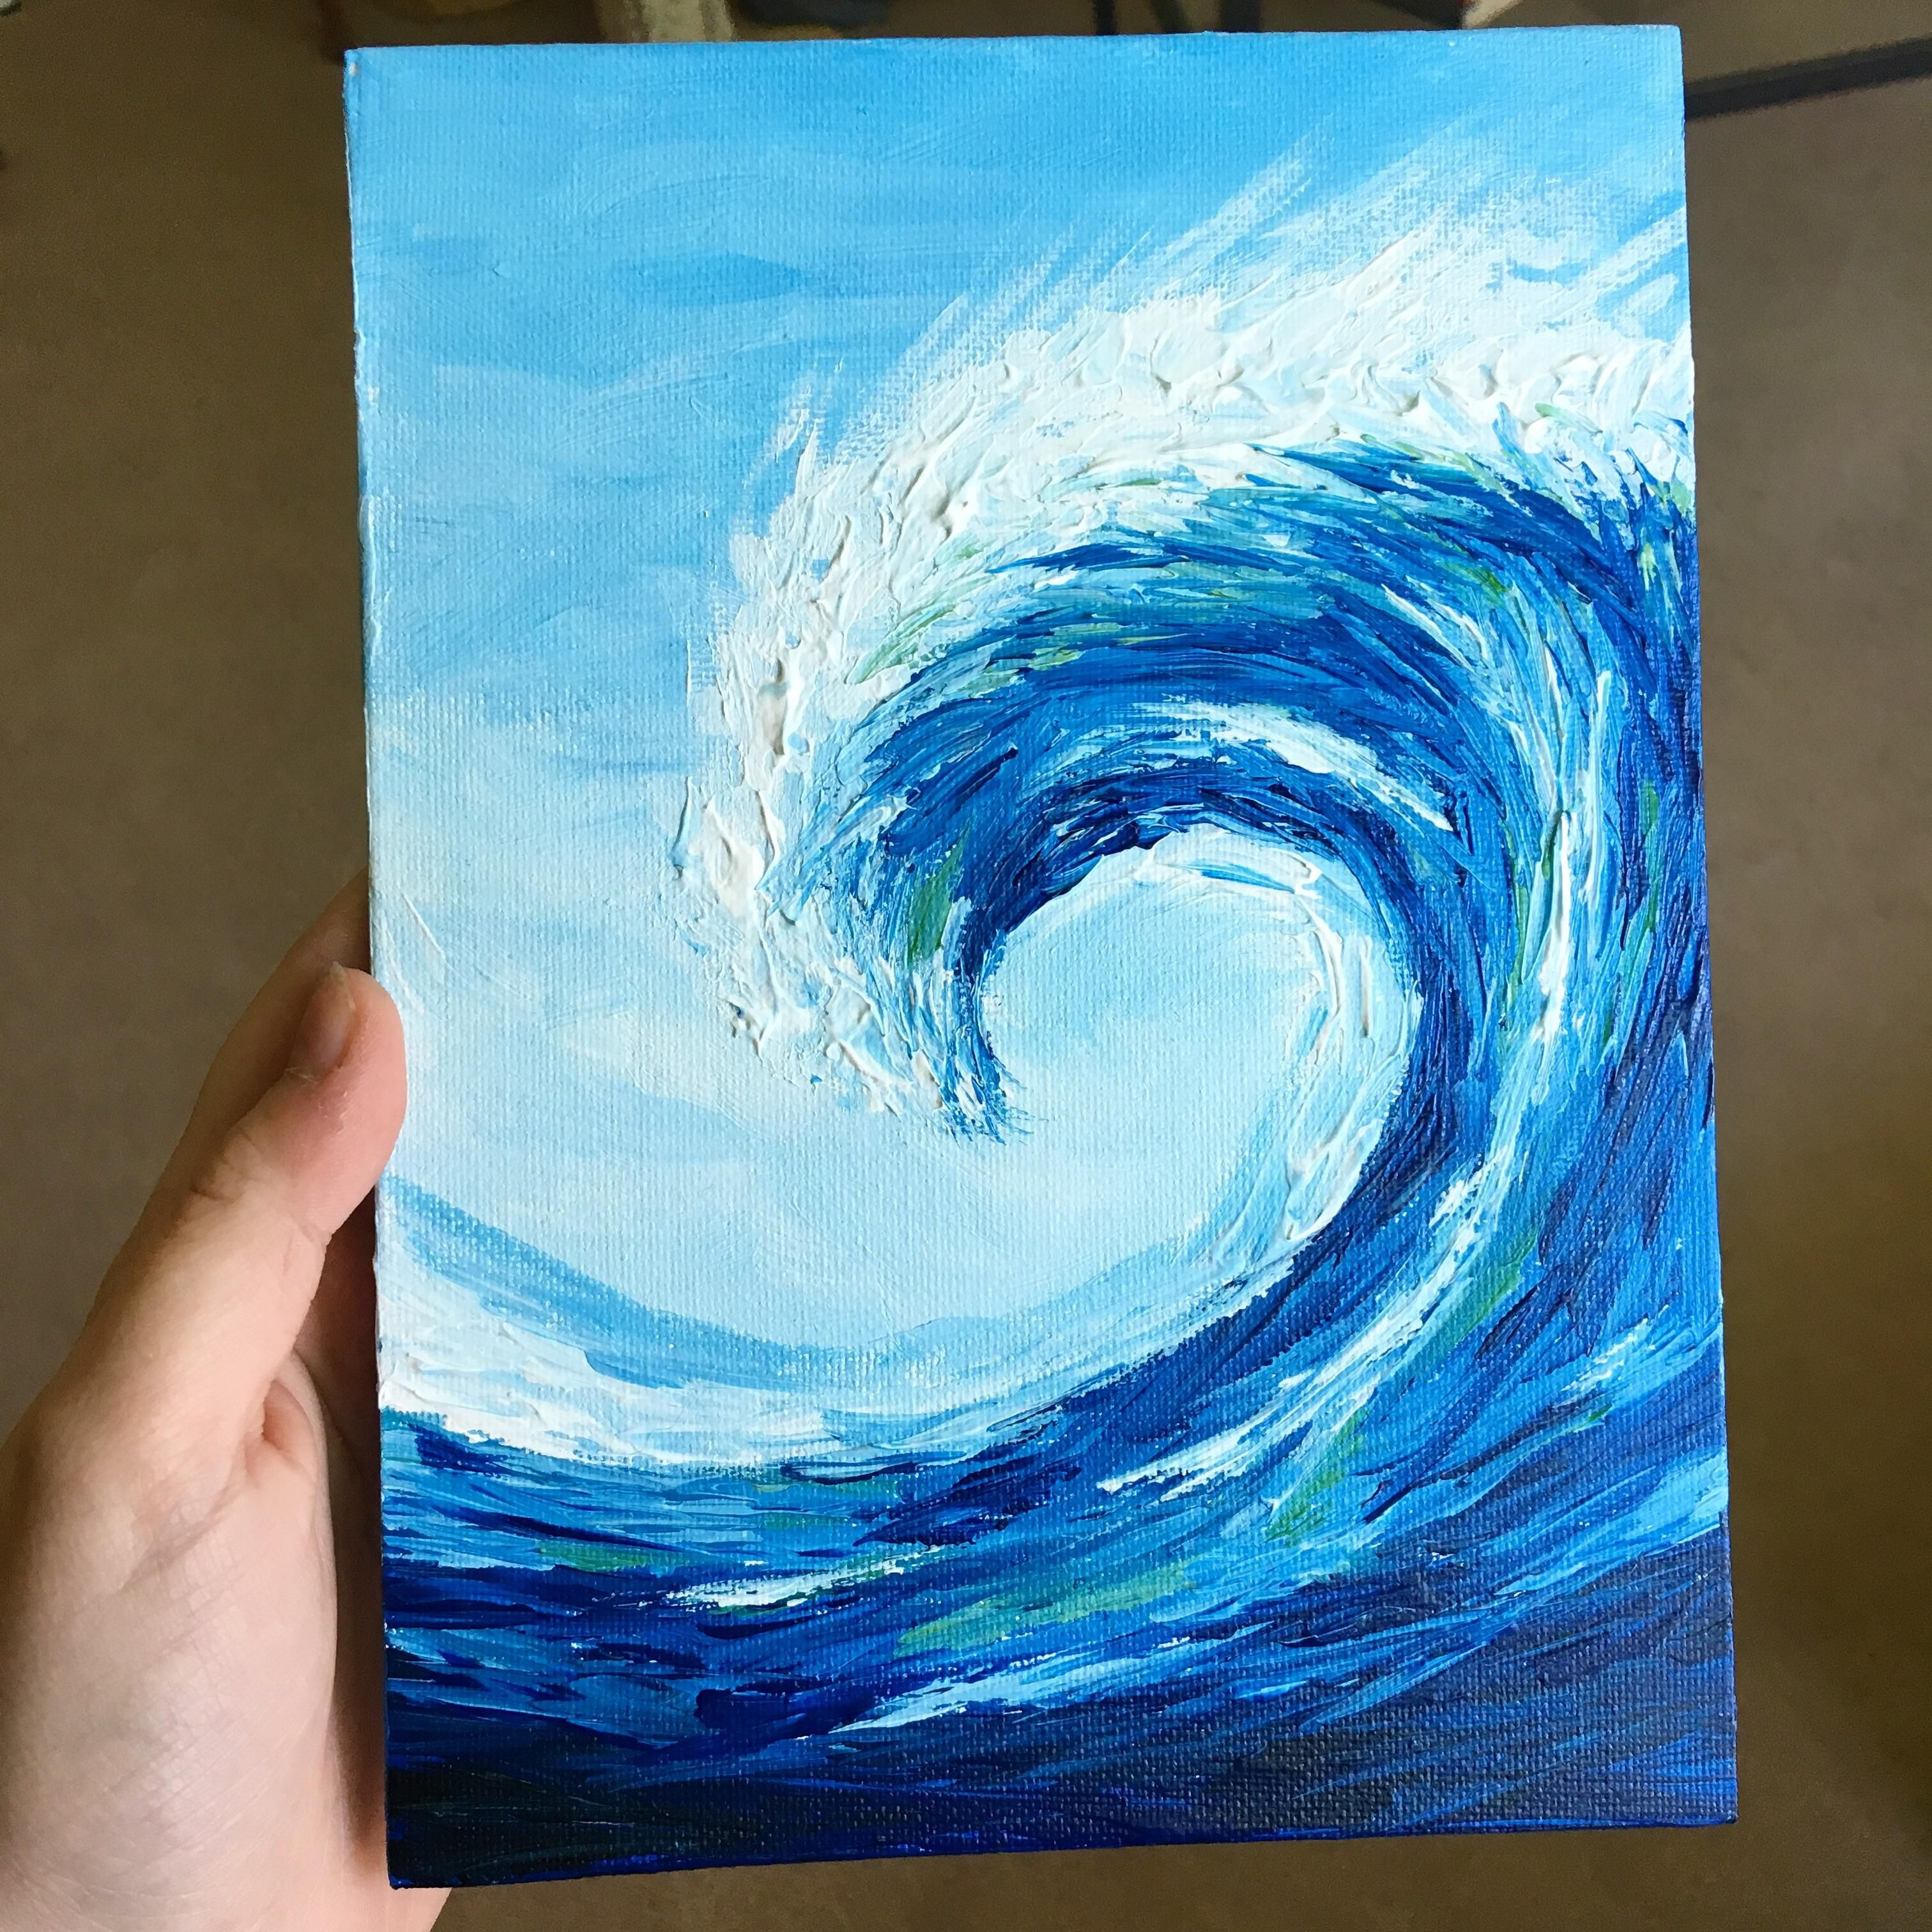 One Of My First Paintings Acrylic On Canvas 6x8 Inches Art Painting Small Diy